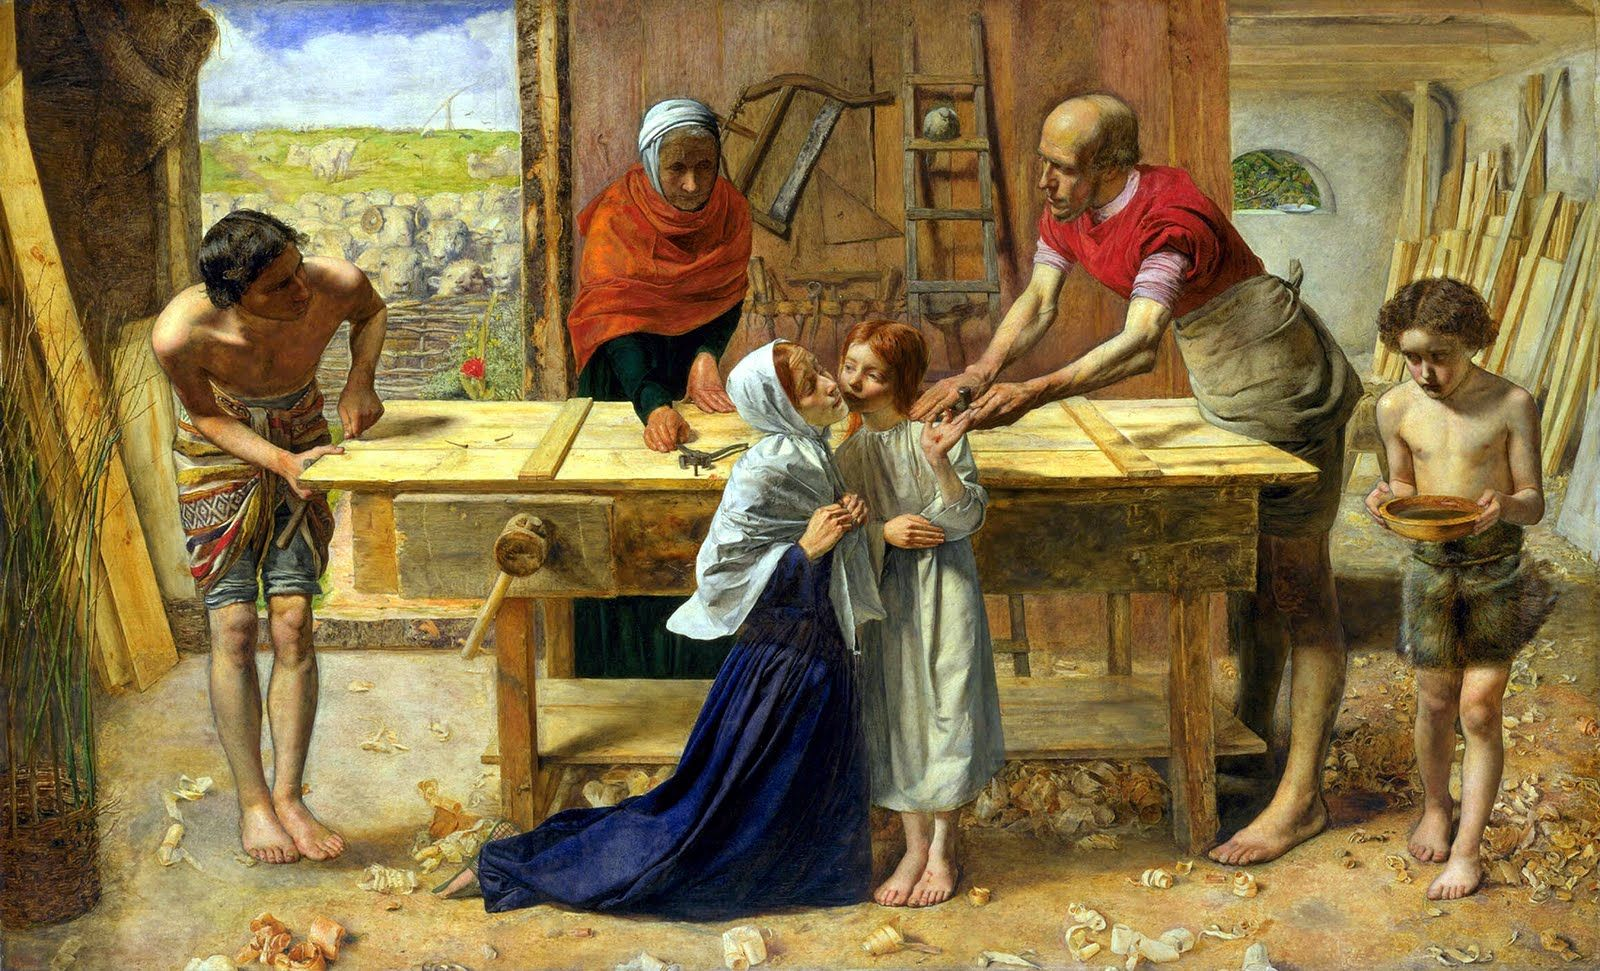 John Everett Millais, Christ in the House of his Parents